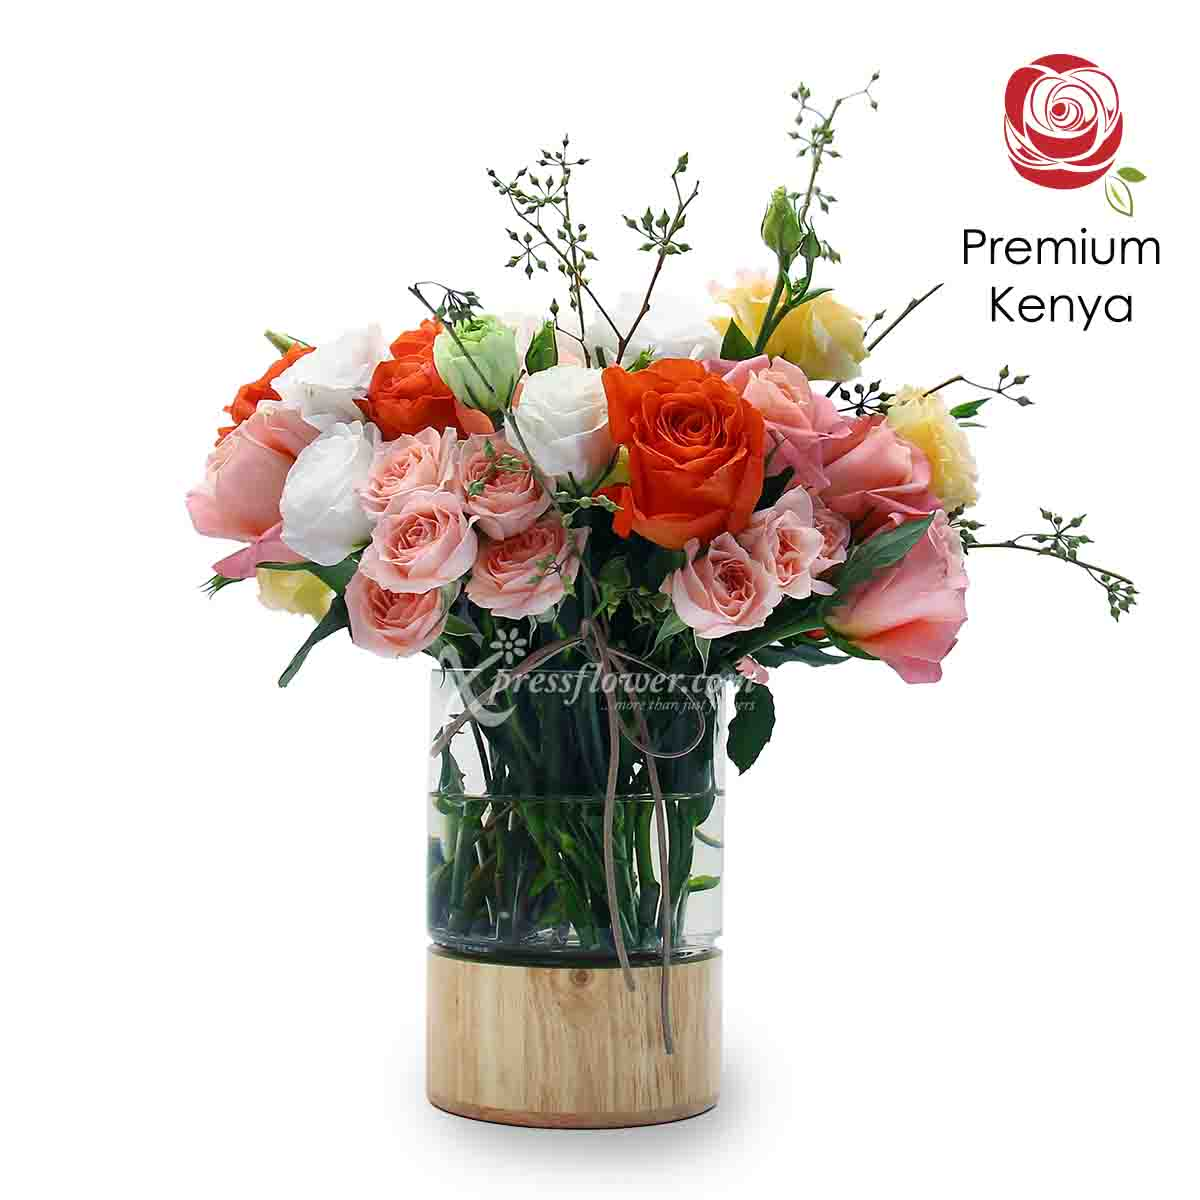 Beaming Beauty (Premium Kenya Pink and Orange Roses Flower Arrangement)